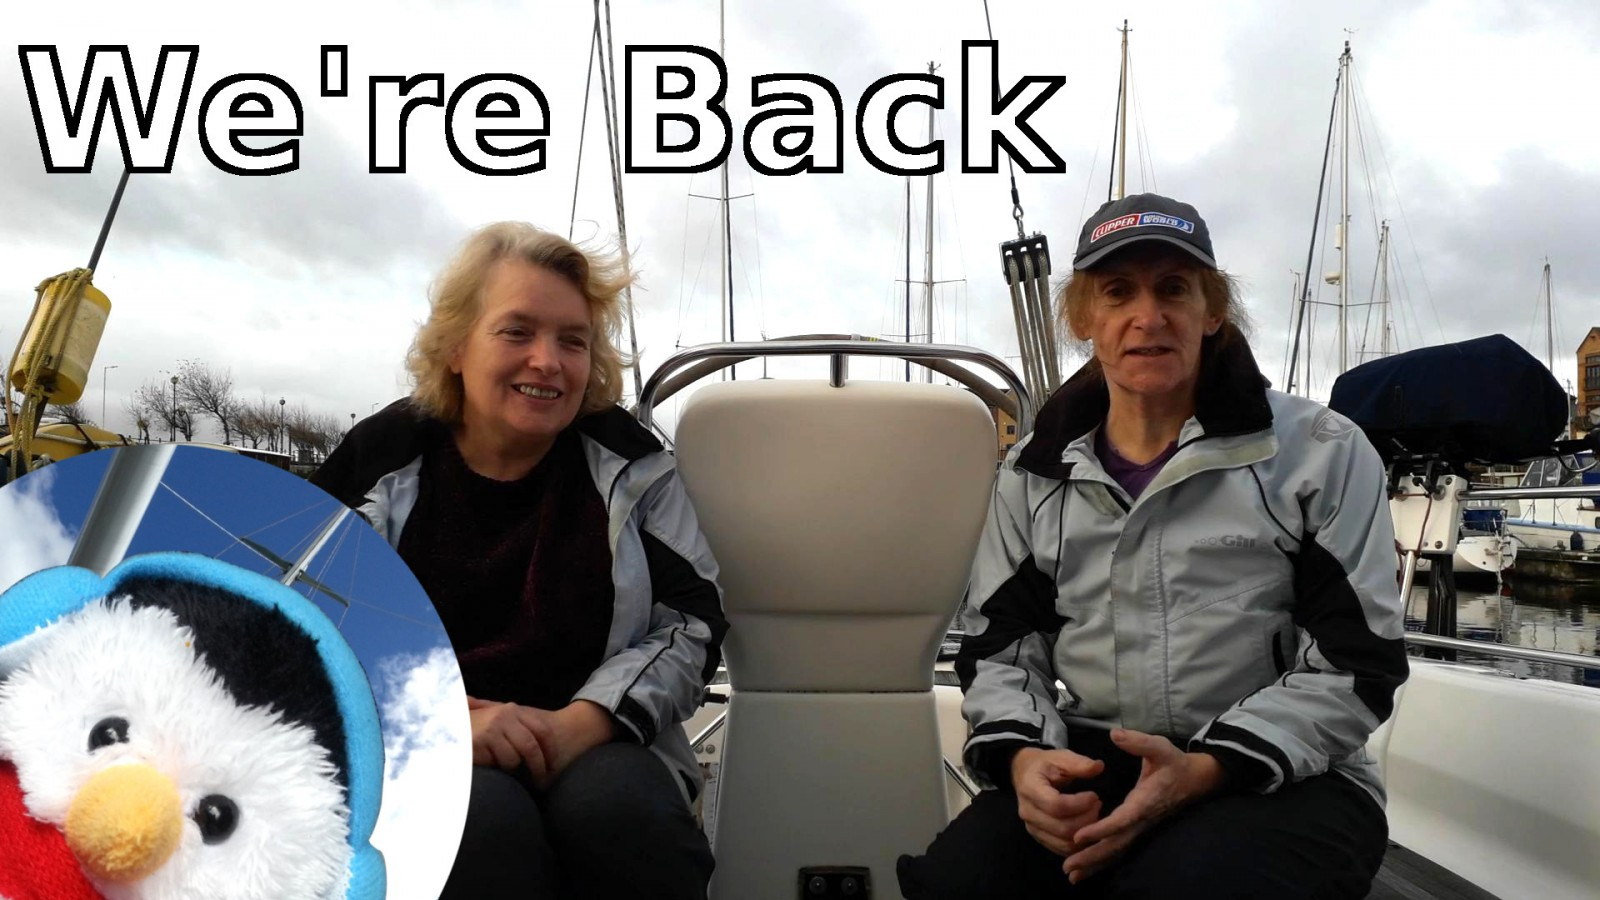 Watch our 'We are back' video and add comments etc.